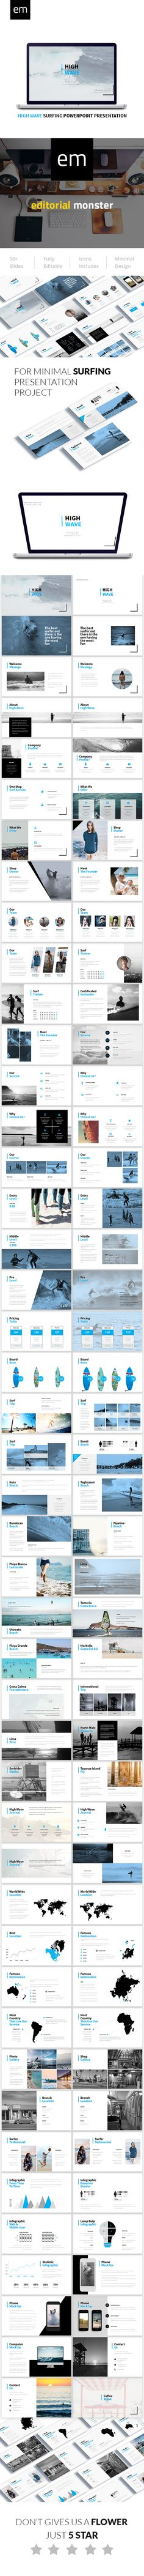 High Wave - Surfing Powerpoint Presentation Template